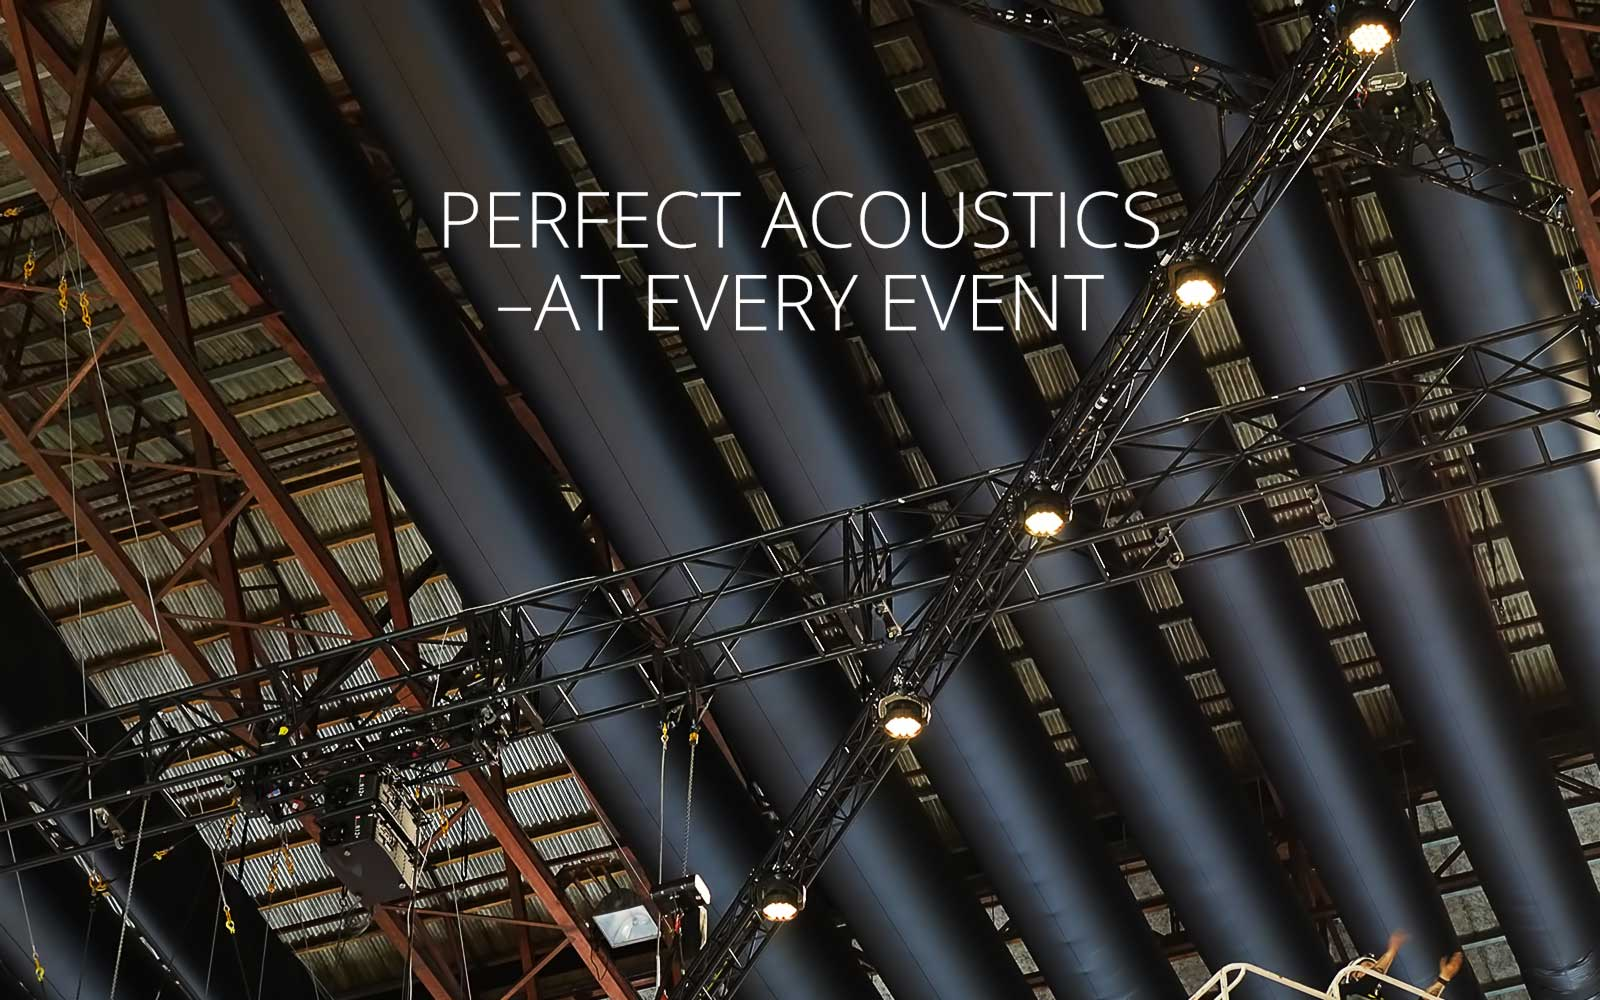 Variable acoustics: The patented AqTube ceiling